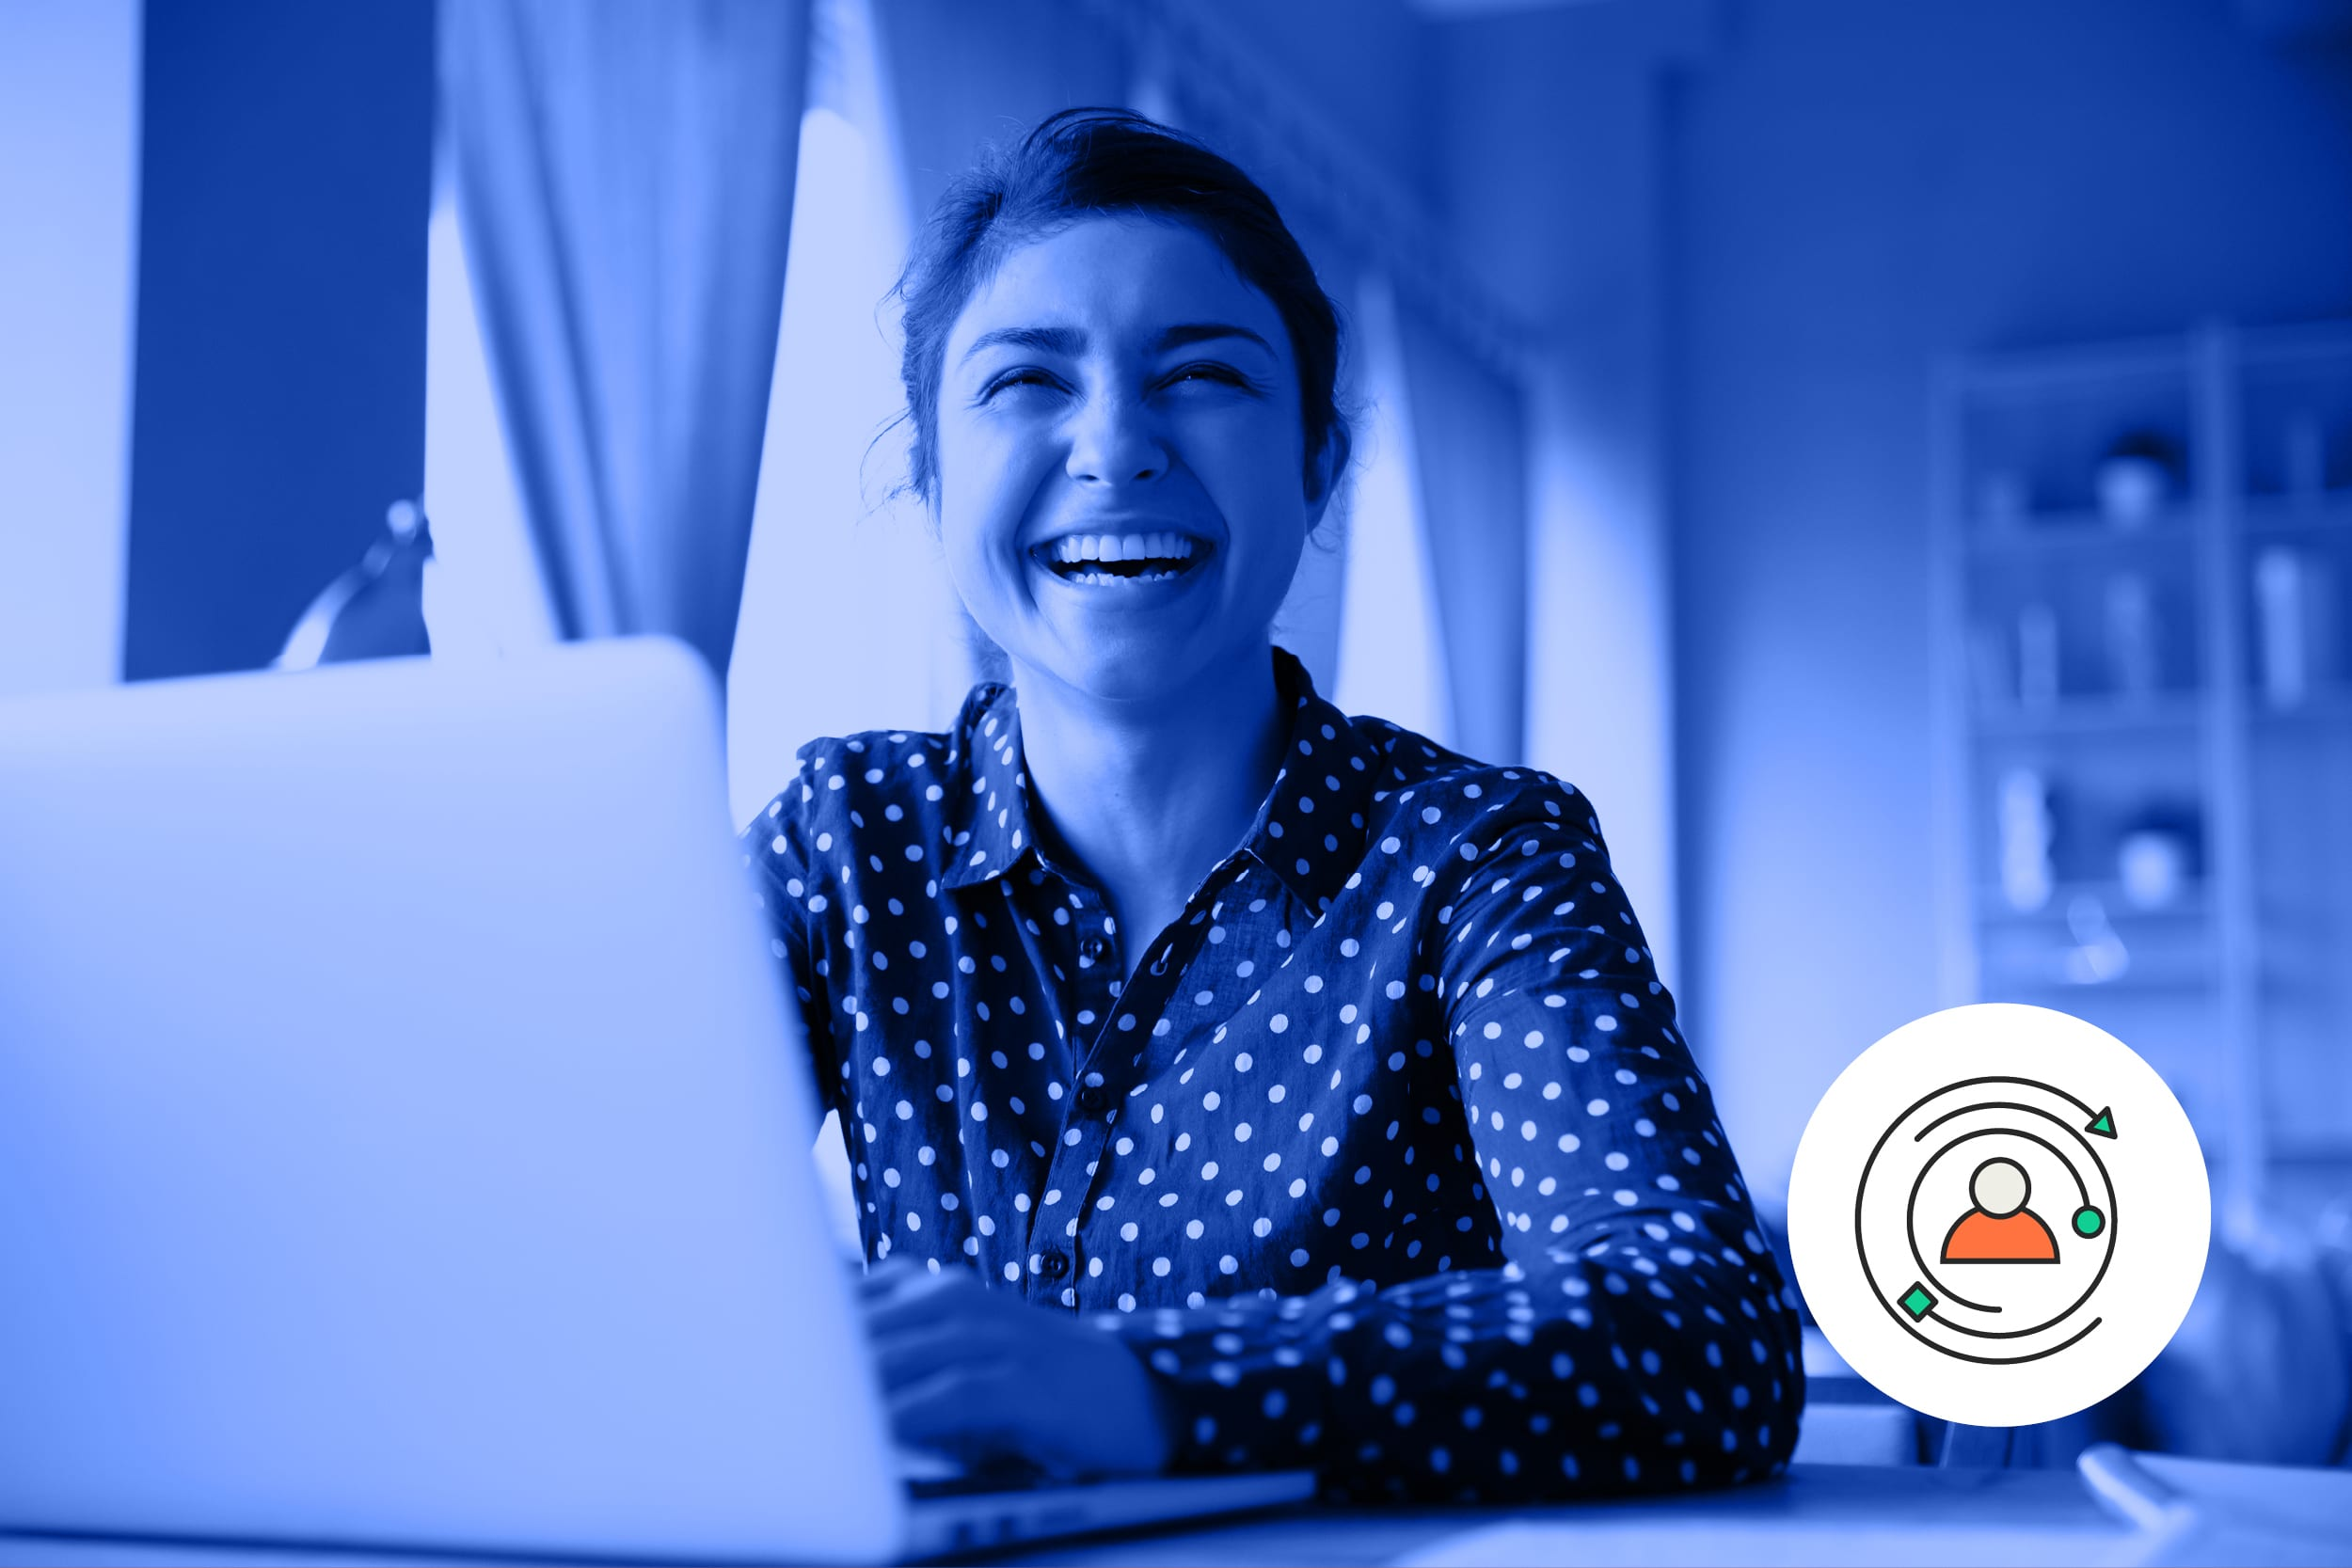 A female candidate smiles as she sits in front of her laptop.